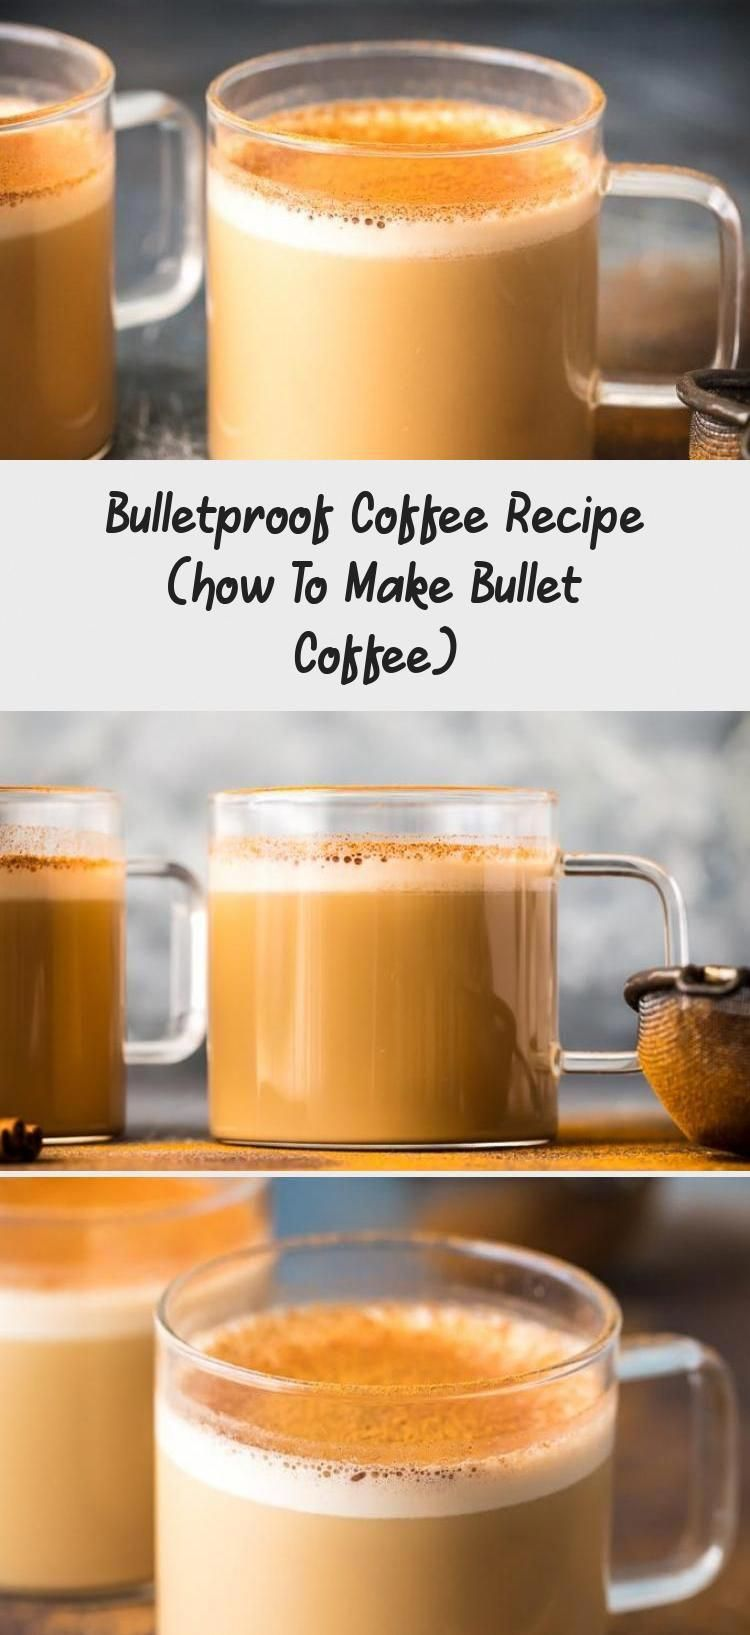 Bulletproof Coffee is a rich, creamy coffee drink filled with healthy fats. It's made with coffee, grass-fed butter, and MCT oil. Coffee with butter has many added health benefits that you don't get from regular #HotCoffee #CoffeeInstagram #CoffeeHouse #CoffeePackaging #CoffeeTable #OrganicGreenCoffeeForWeightLoss